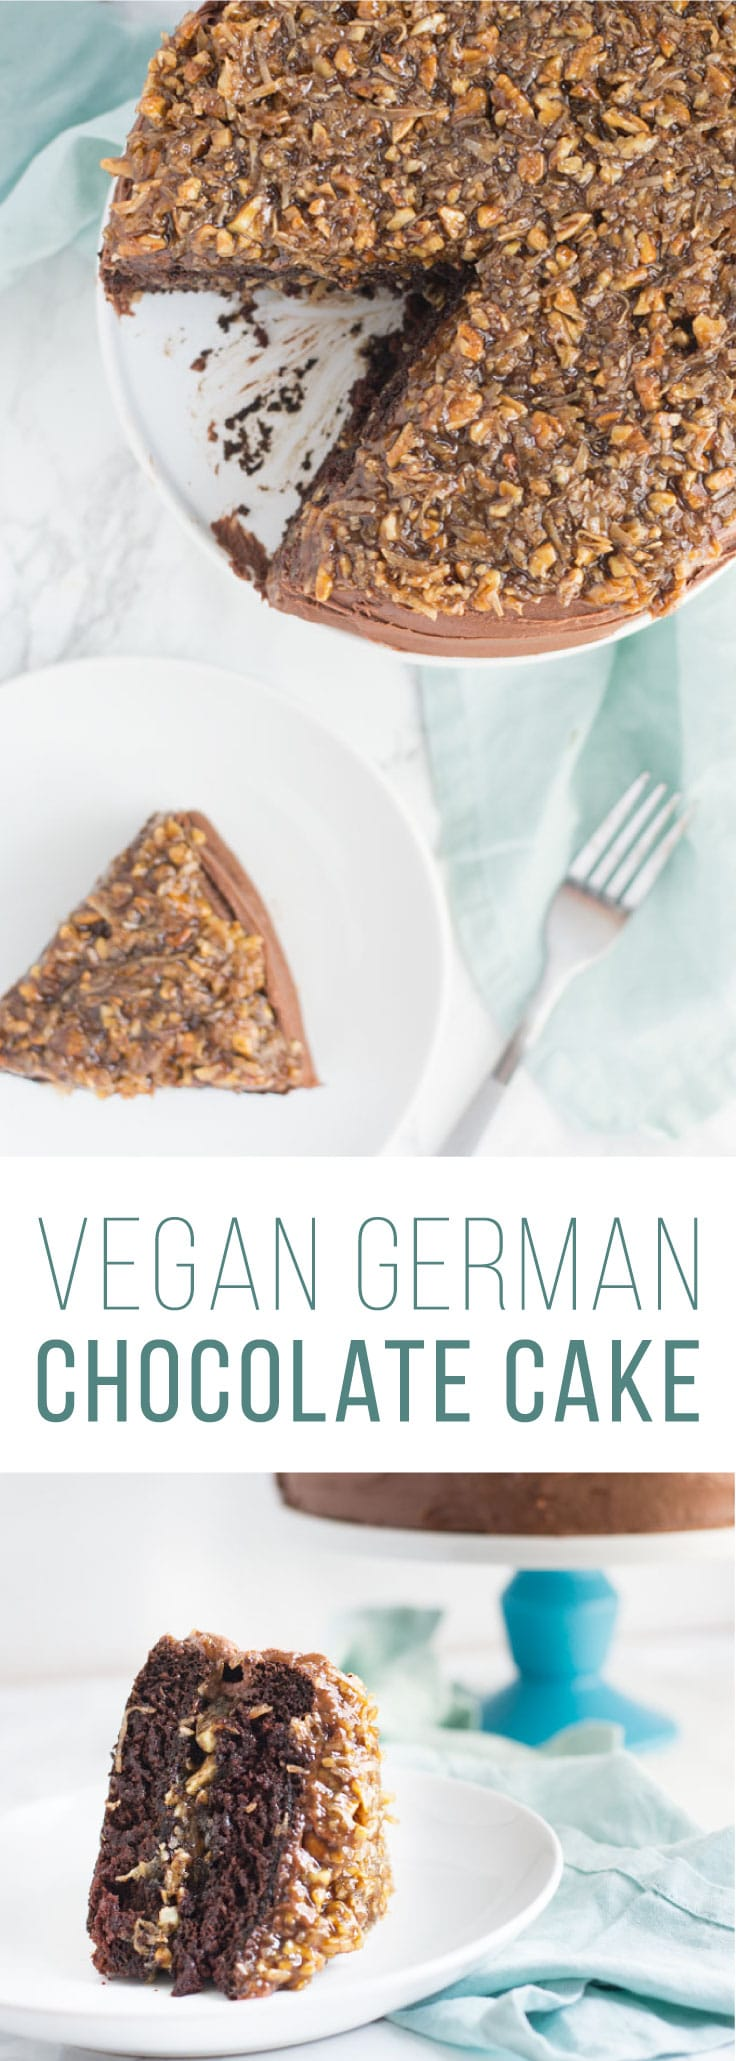 Vegan German Chocolate Cake -- This decadent cake recipe is the BEST for chocolate lovers! Moist chocolate cake layered with coconut pecan frosting and topped with a rich chocolate buttercream. #vegan #baking #chocolatecake #chocolate #coconut #eggfree #dairyfree | mindfulavocado